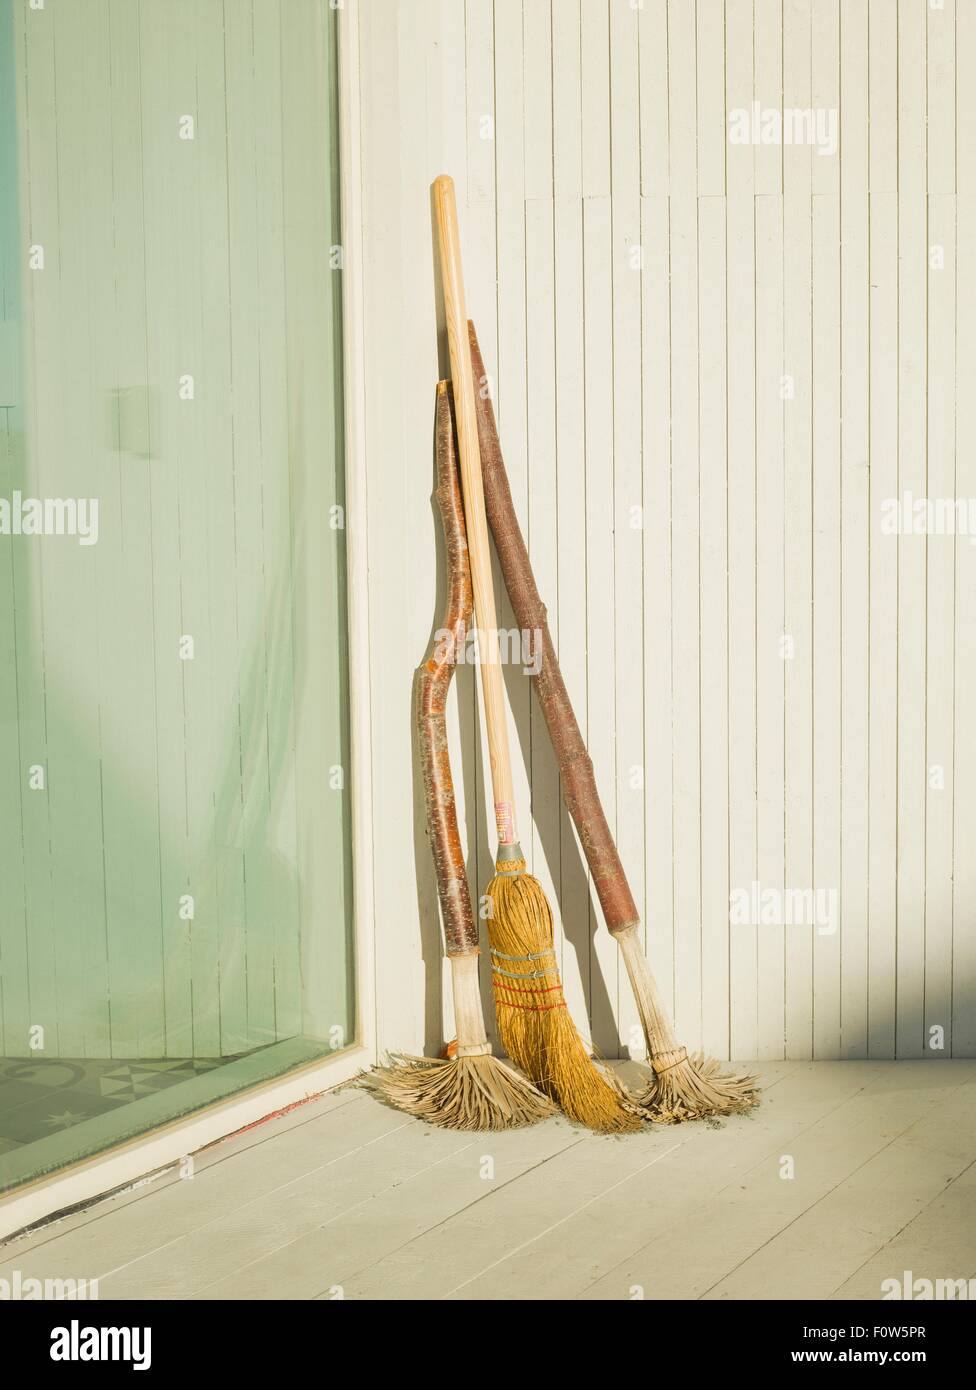 Brooms and mops leaning against patio door - Stock Image